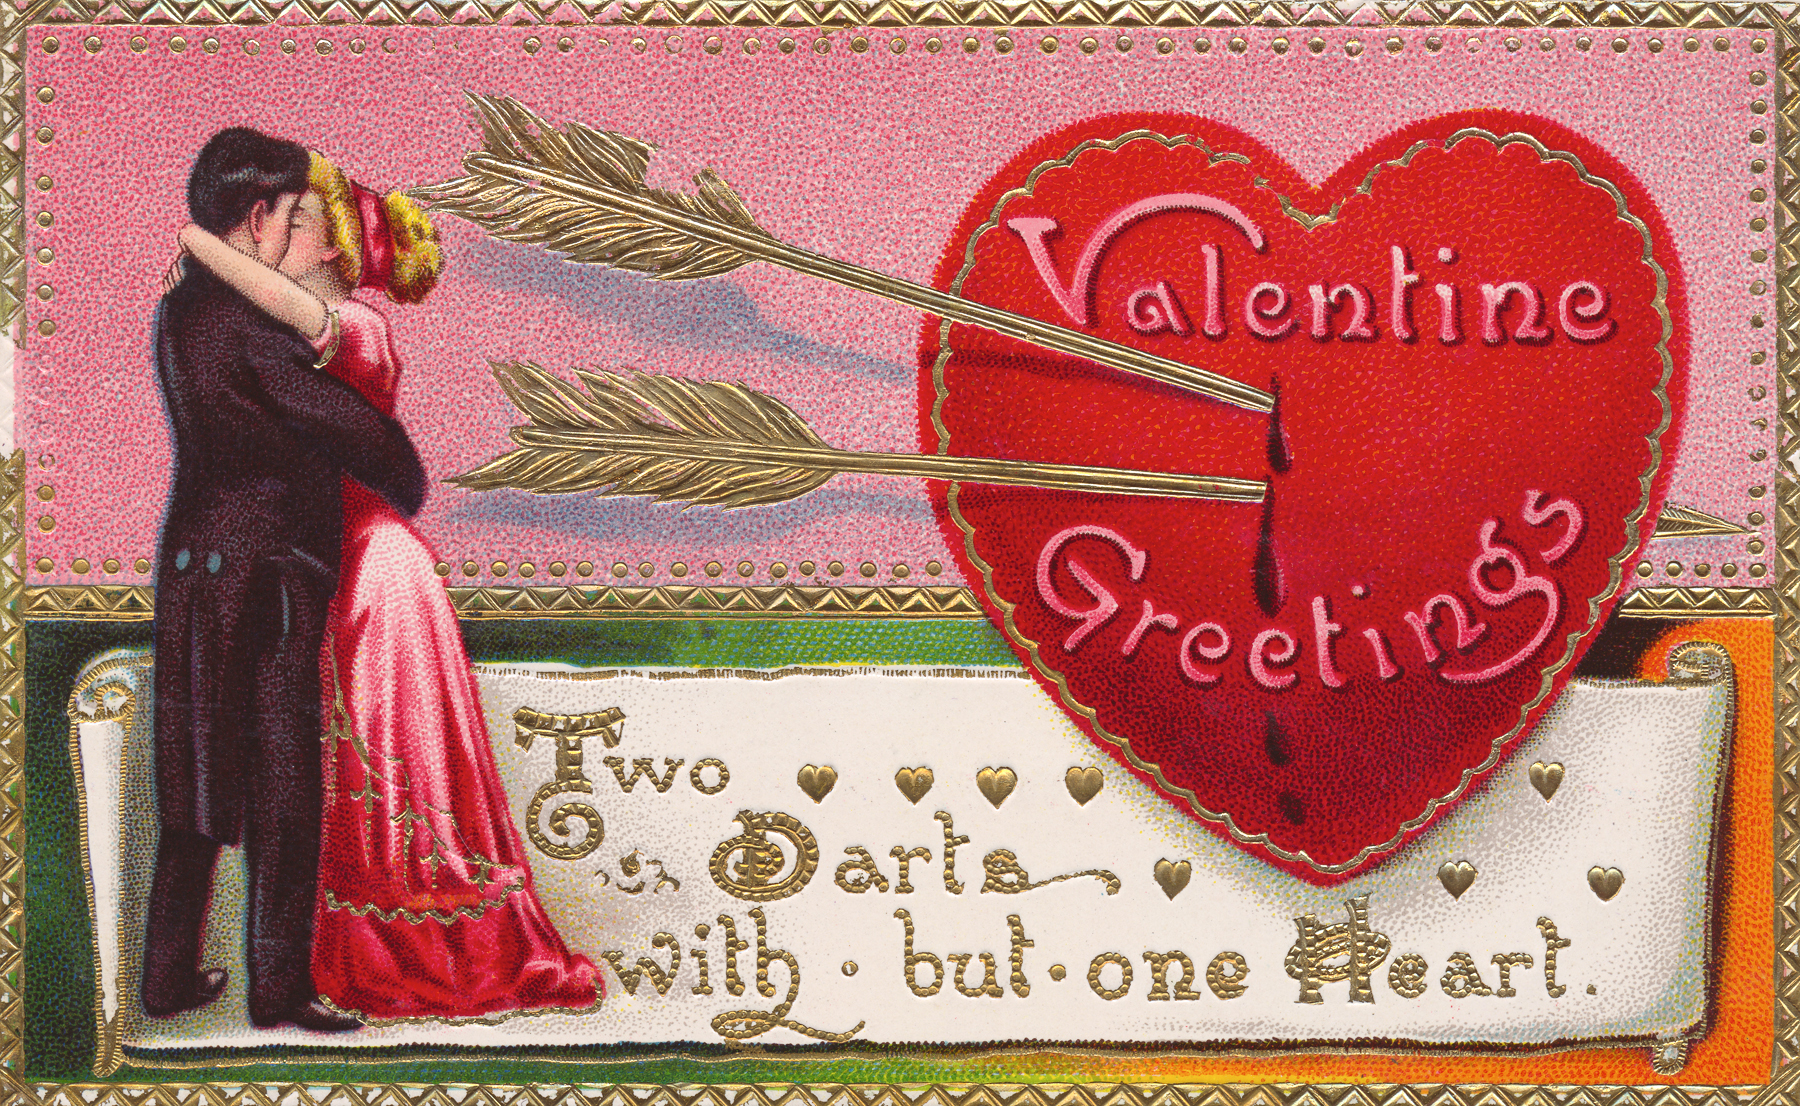 Valentine greetings card - circa 1910s photo